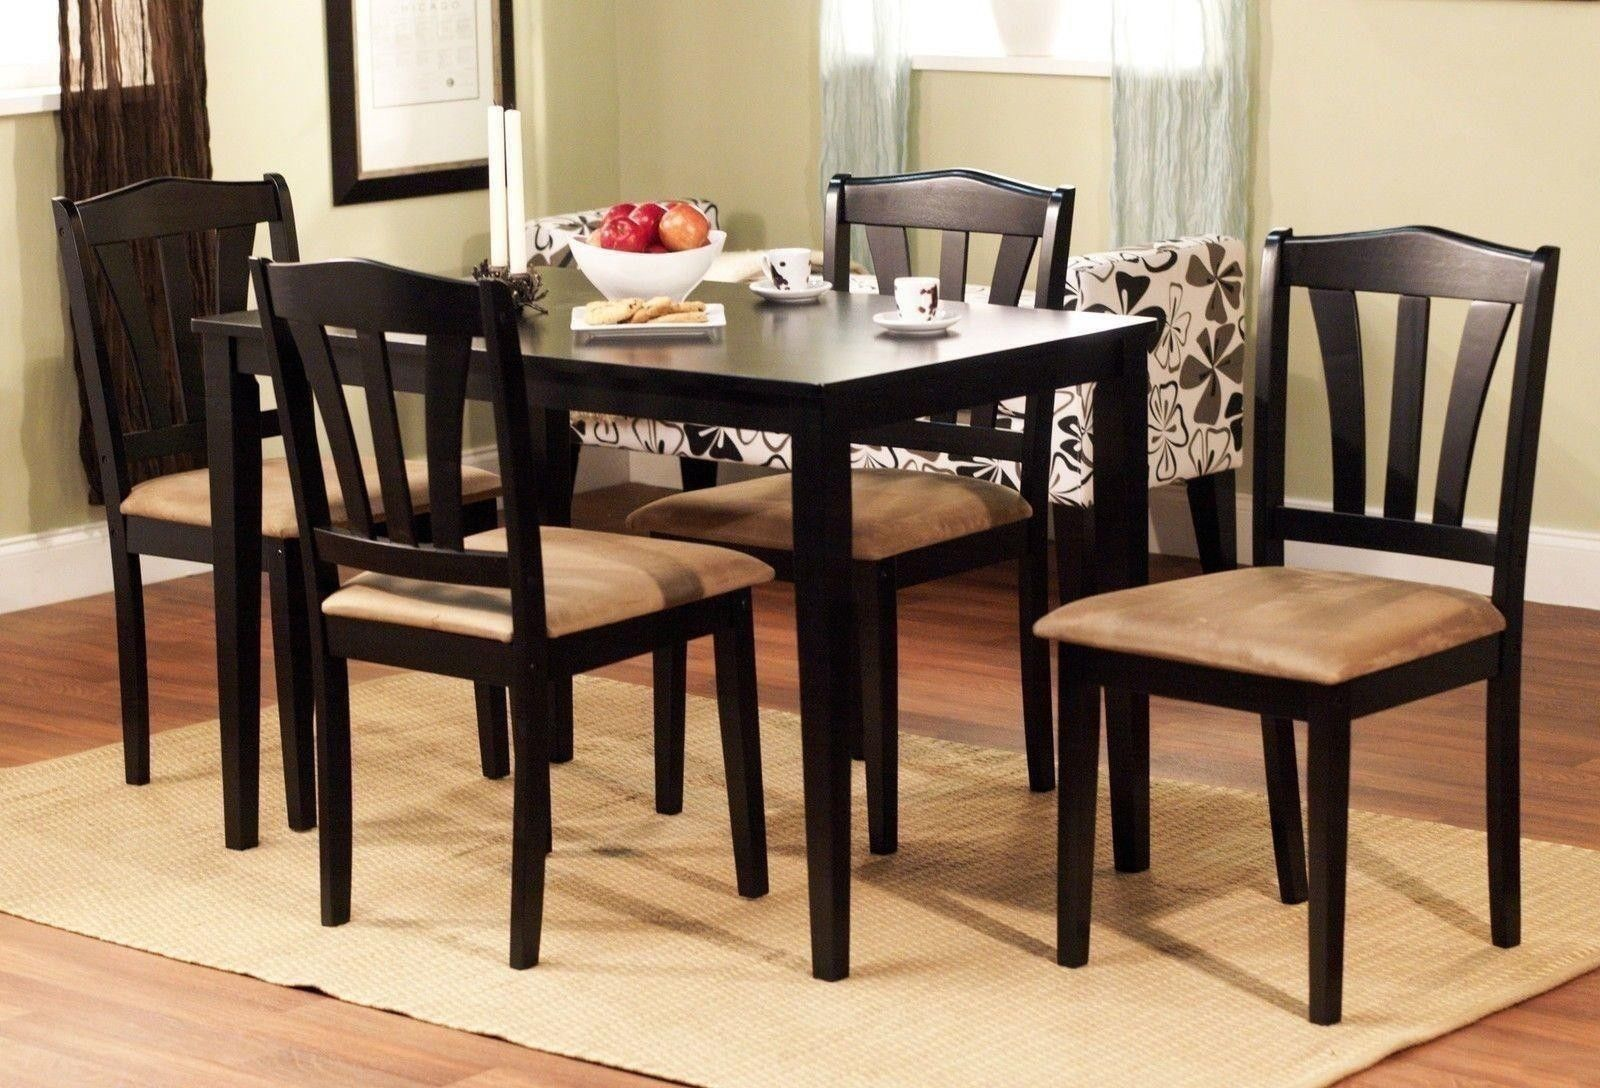 5 Piece Dining Set Wood Breakfast Furniture 4 Chairs And Table Extraordinary Square Dining Room Set 2018